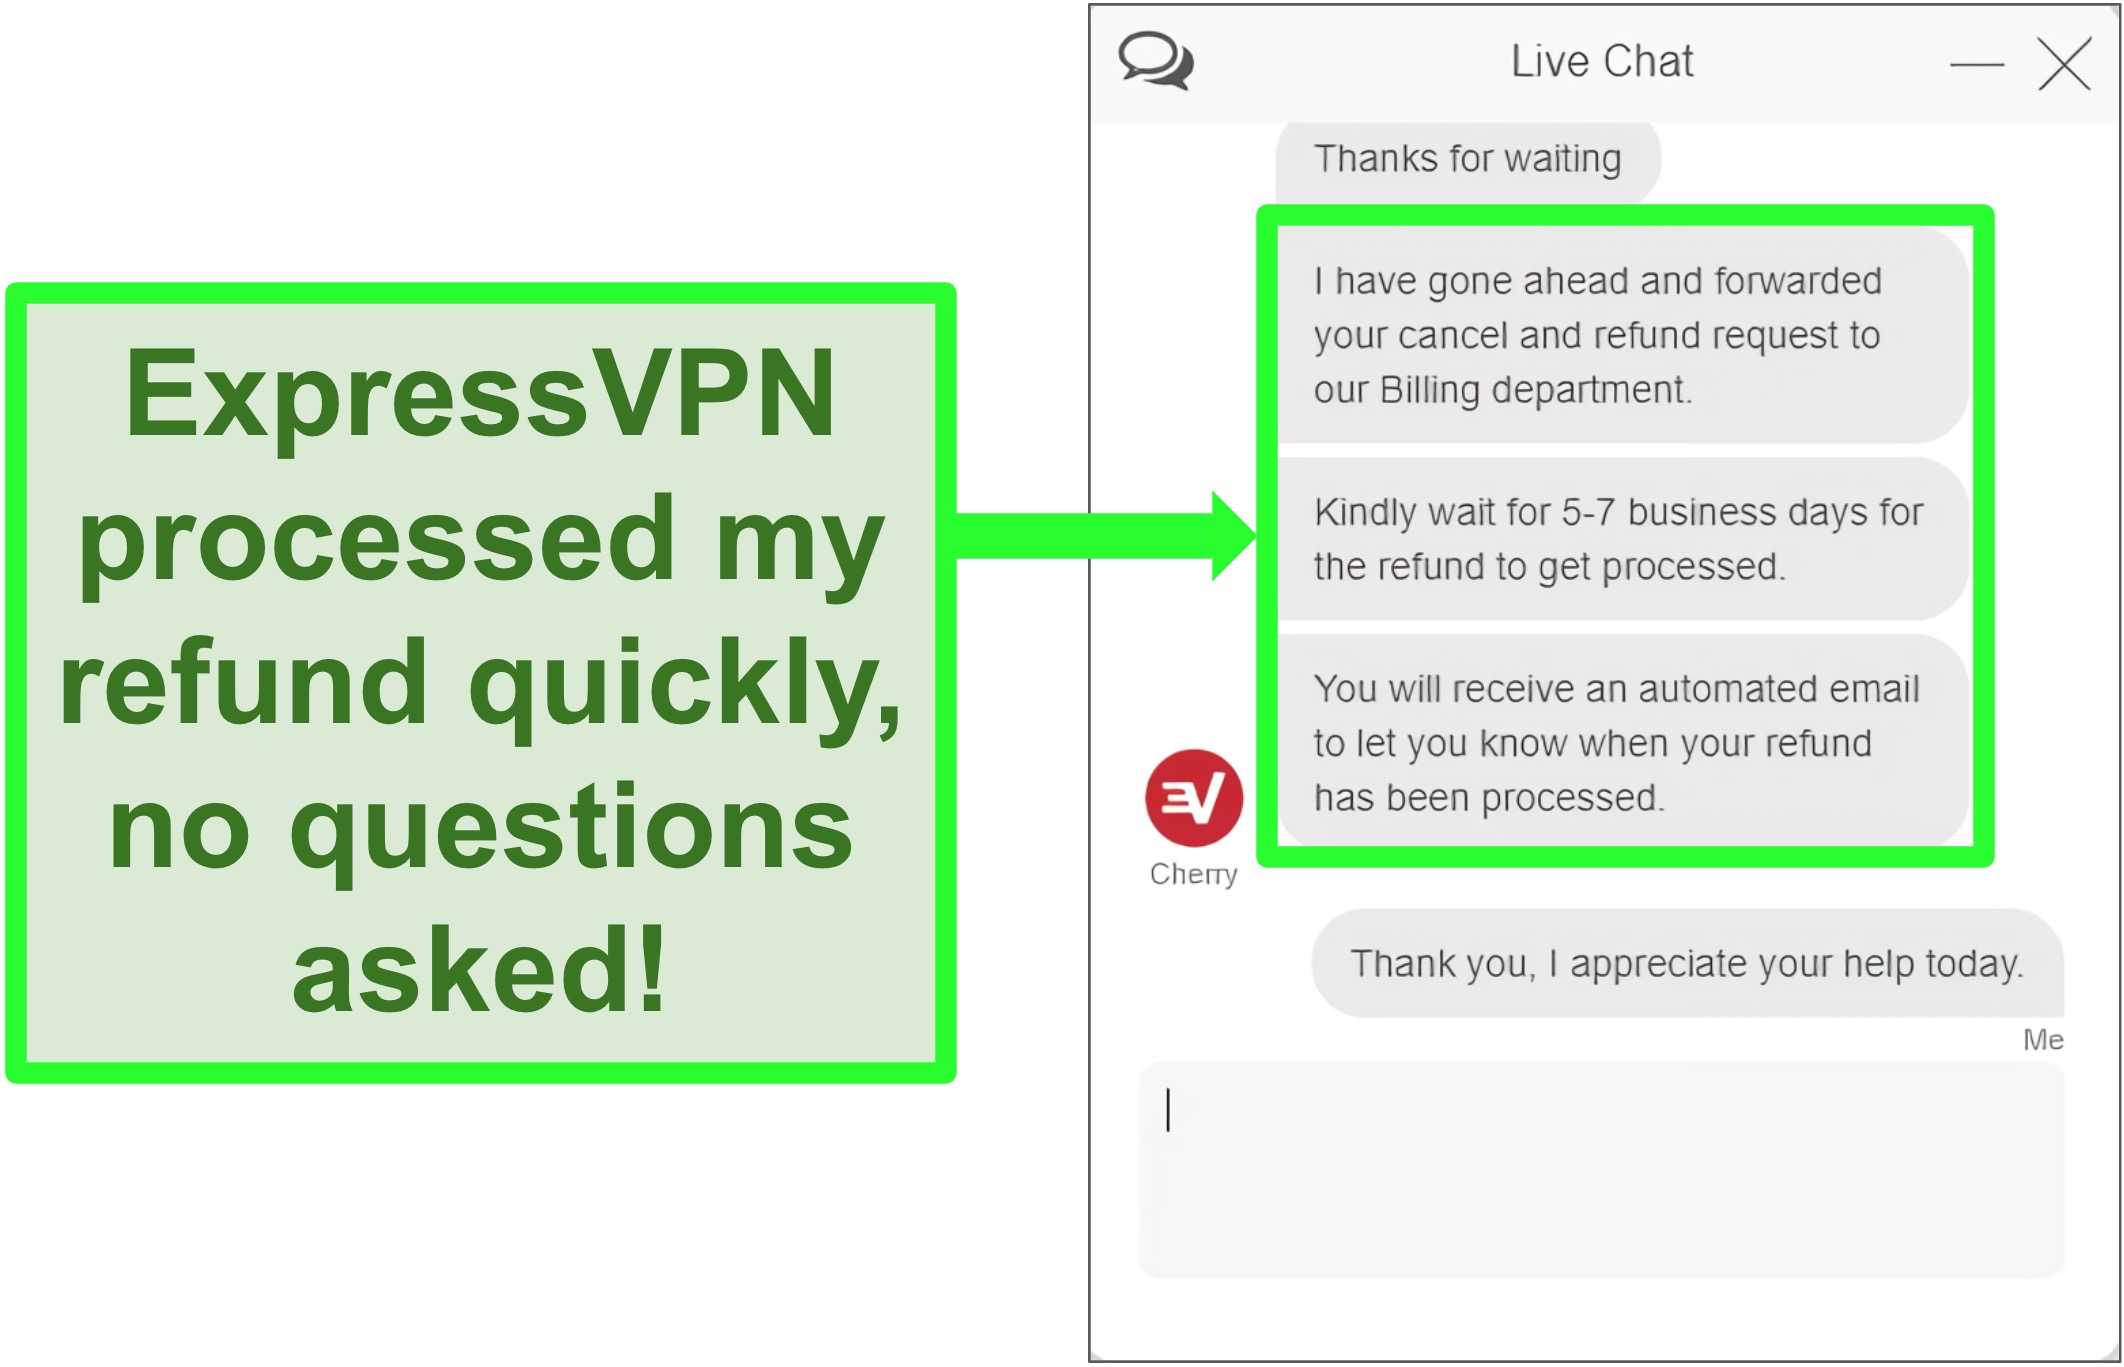 Screenshot of ExpressVPN live chat refund being processed